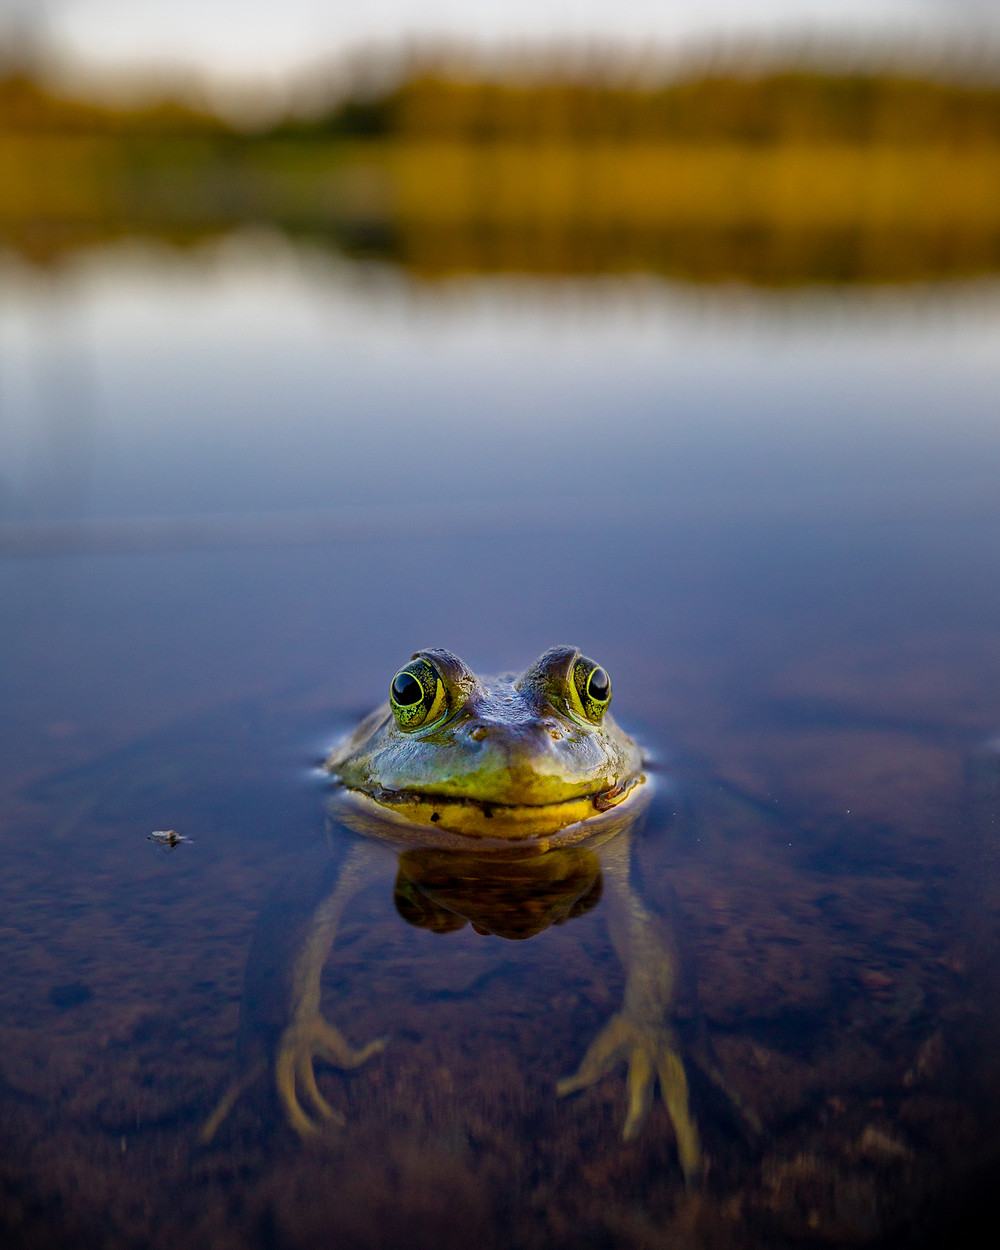 A close up shot of a green frog in a lake. The frog is looking straight at the camera.